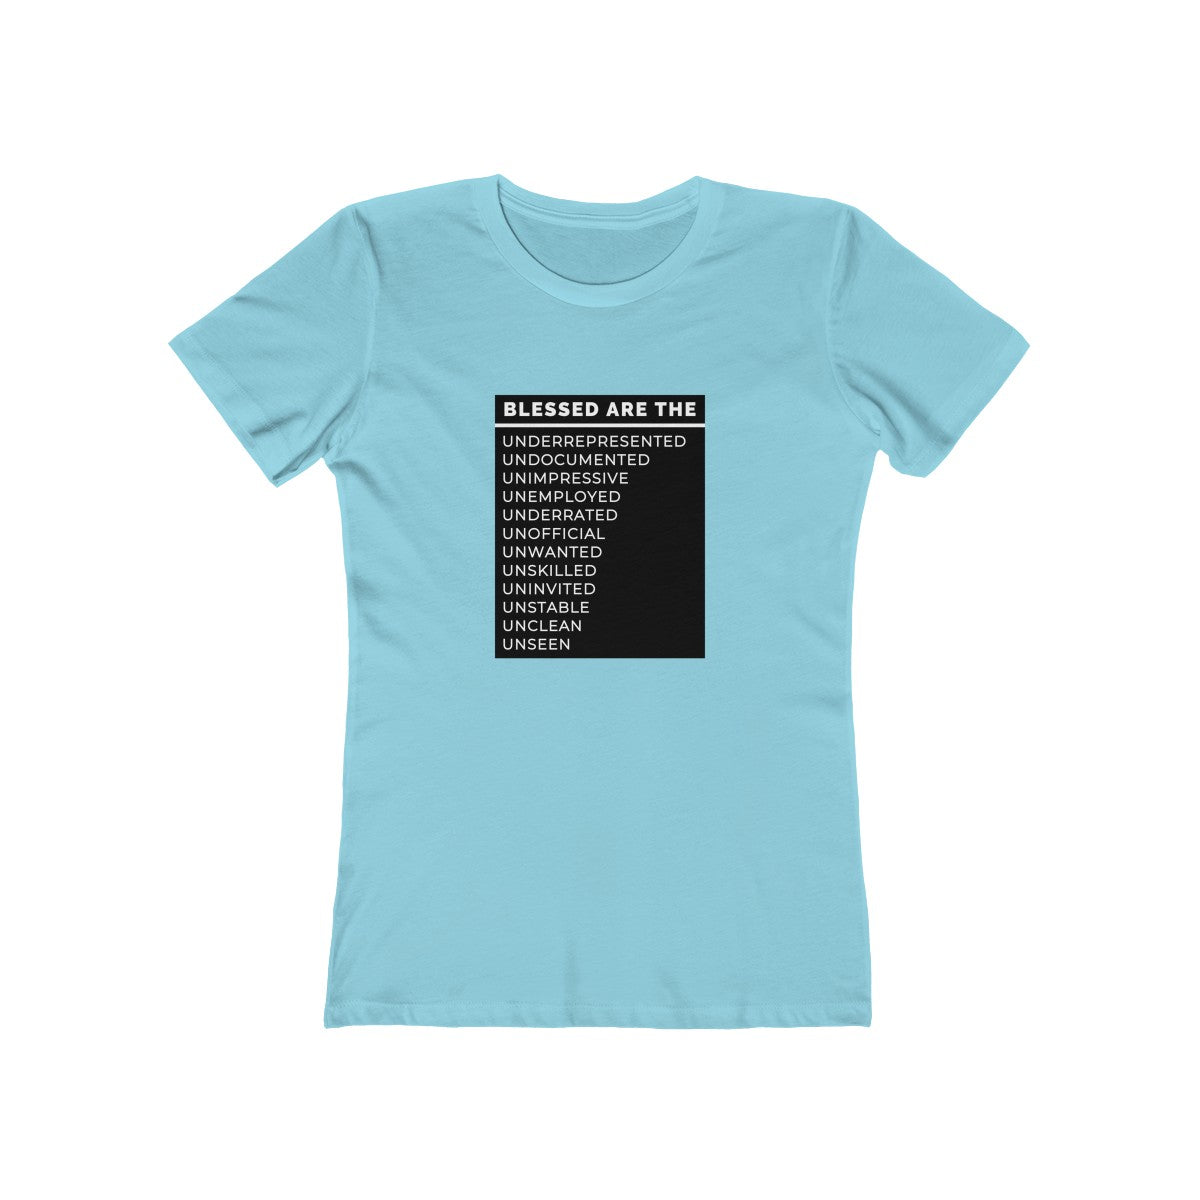 Blessed Are The Women's Tee